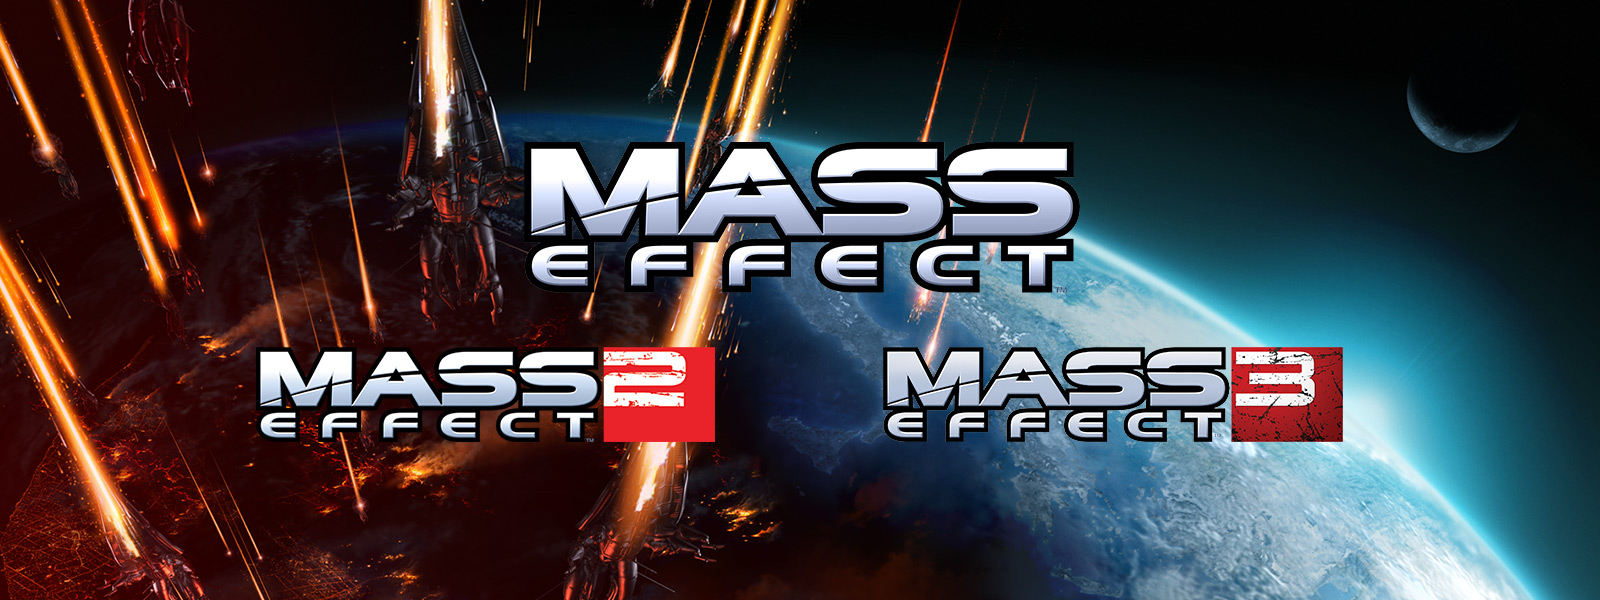 Mass Effect Backward Compatibility